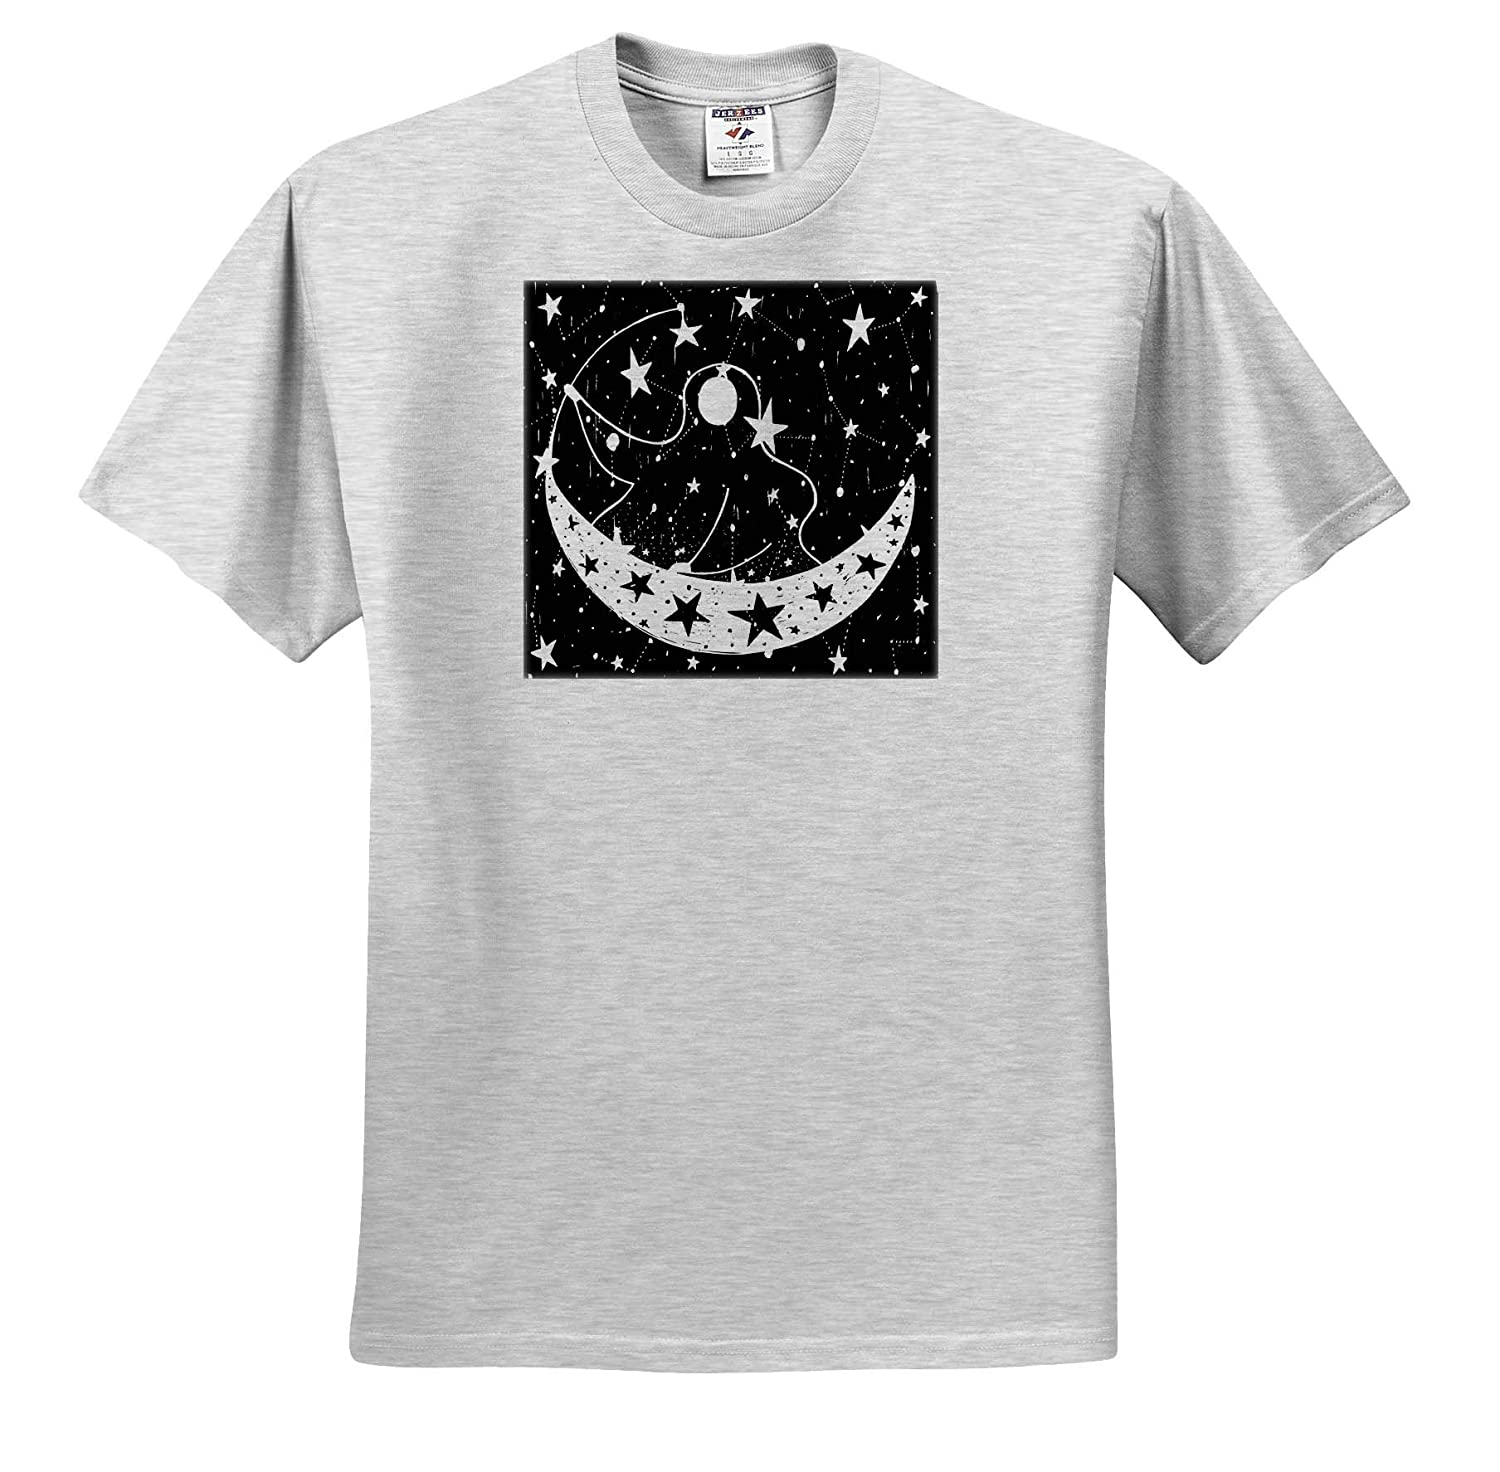 3dRose Spiritual Awakenings Digital Art T-Shirts Crescent Moon Starts and The Man in The Moon Art